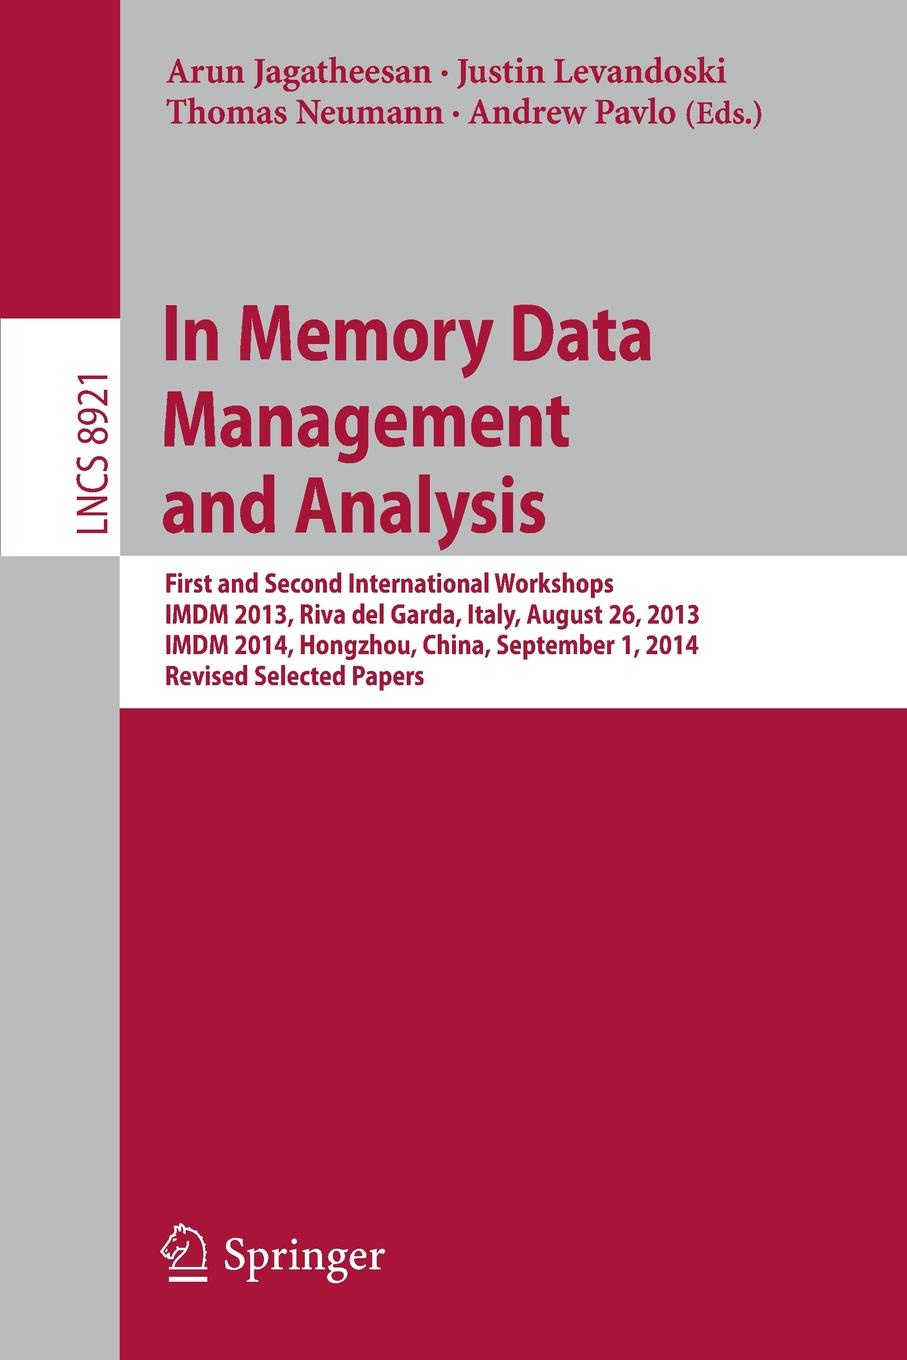 In Memory Data Management and Analysis. First and Second International Workshops, IMDM 2013, Riva del Garda, Italy, August 26, 2013, IMDM 2014, Hongzhou, China, September 1, 2014, Revised Selected Papers китайский бутик телефонов made in china 2014 f15 w8